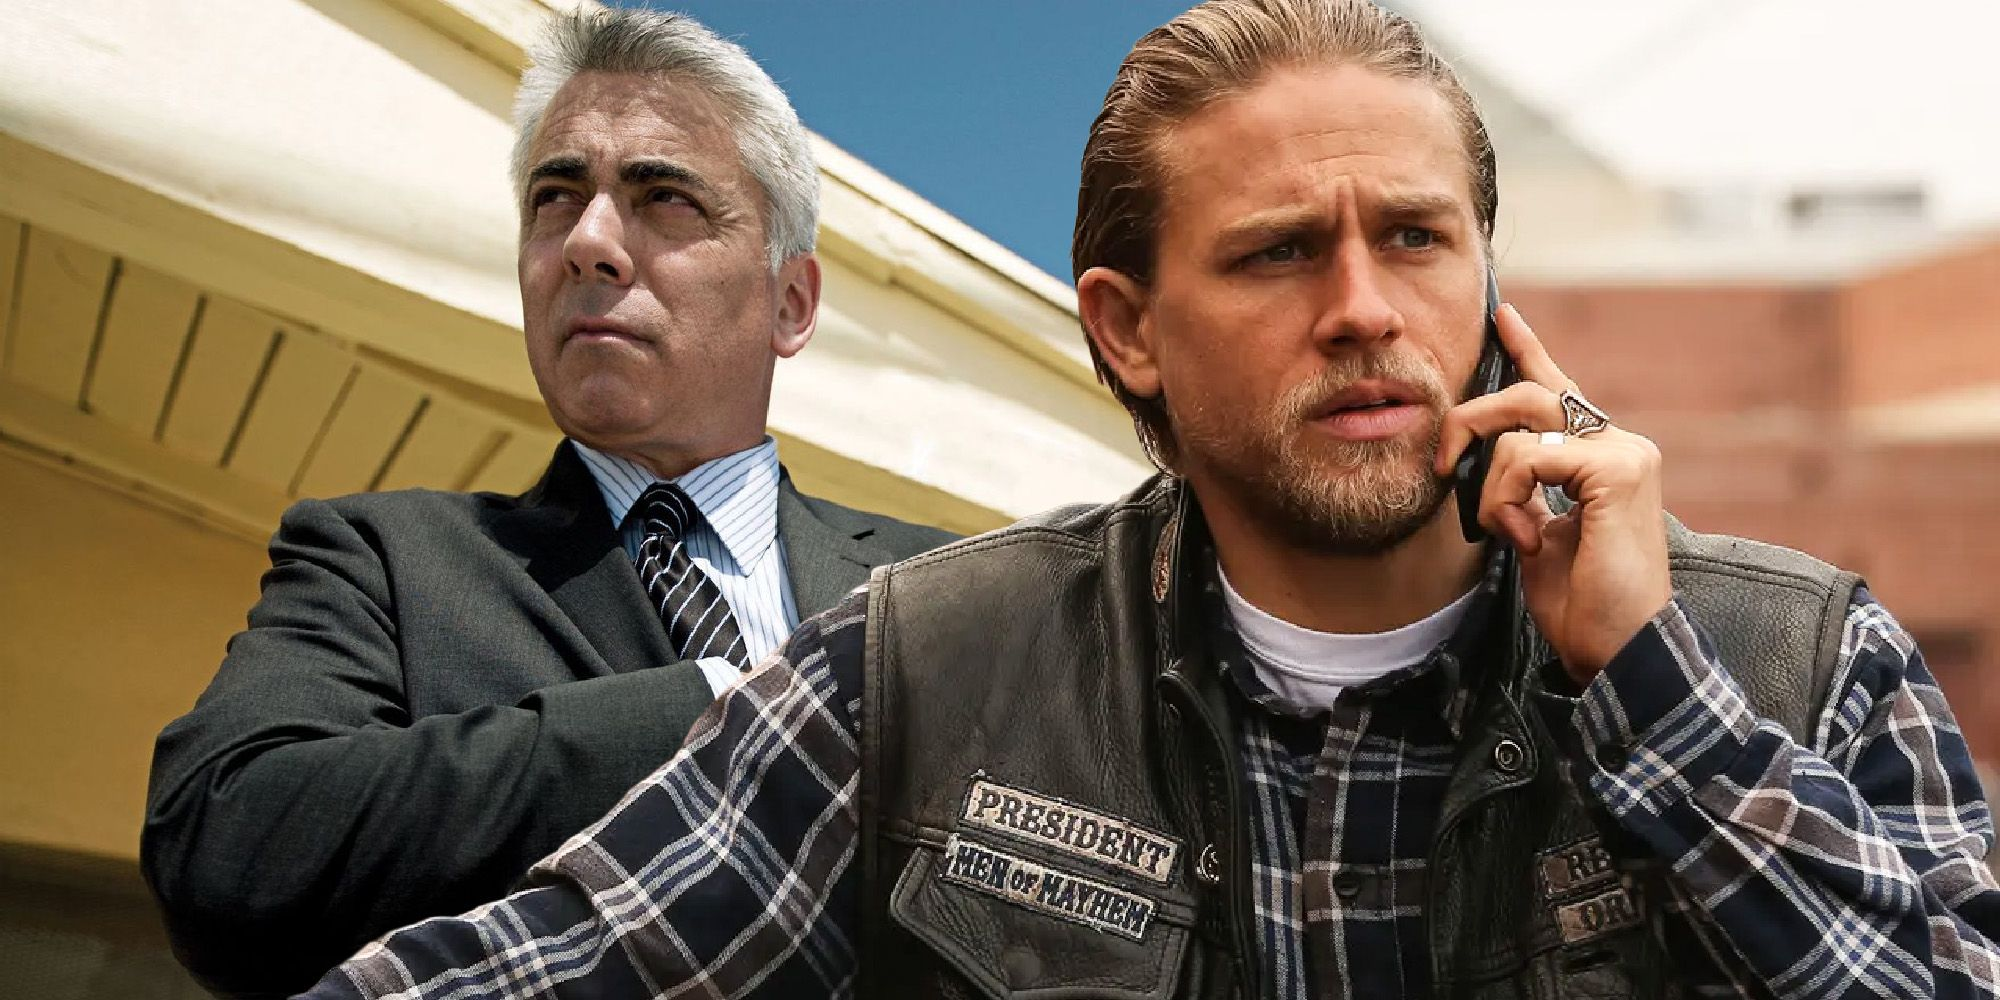 Sons of Anarchy: What Happened To Zobelle (Is He Dead)?